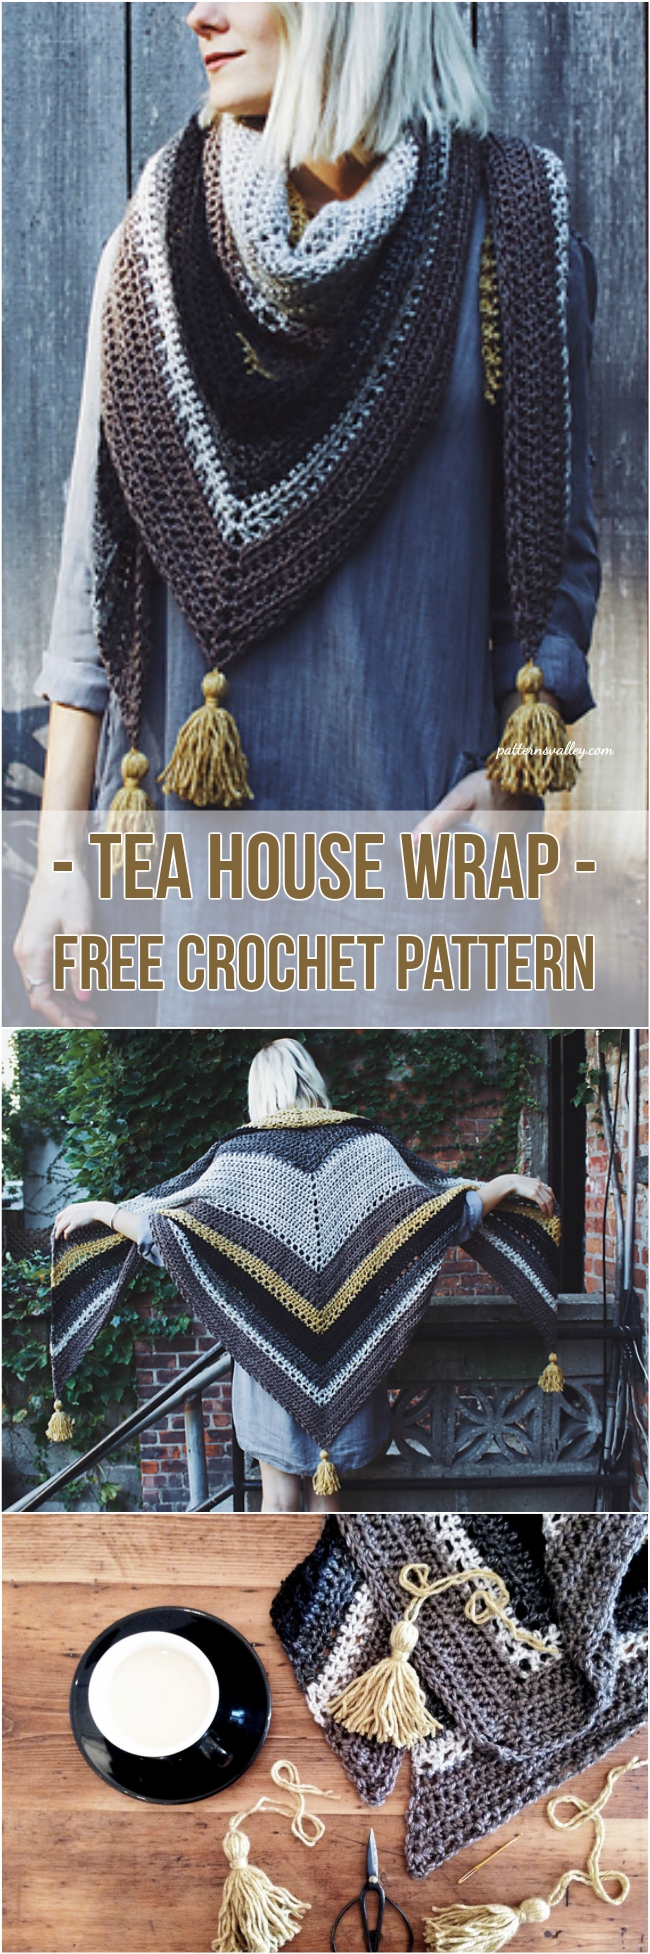 Tea House Wrap - Free Crochet Pattern